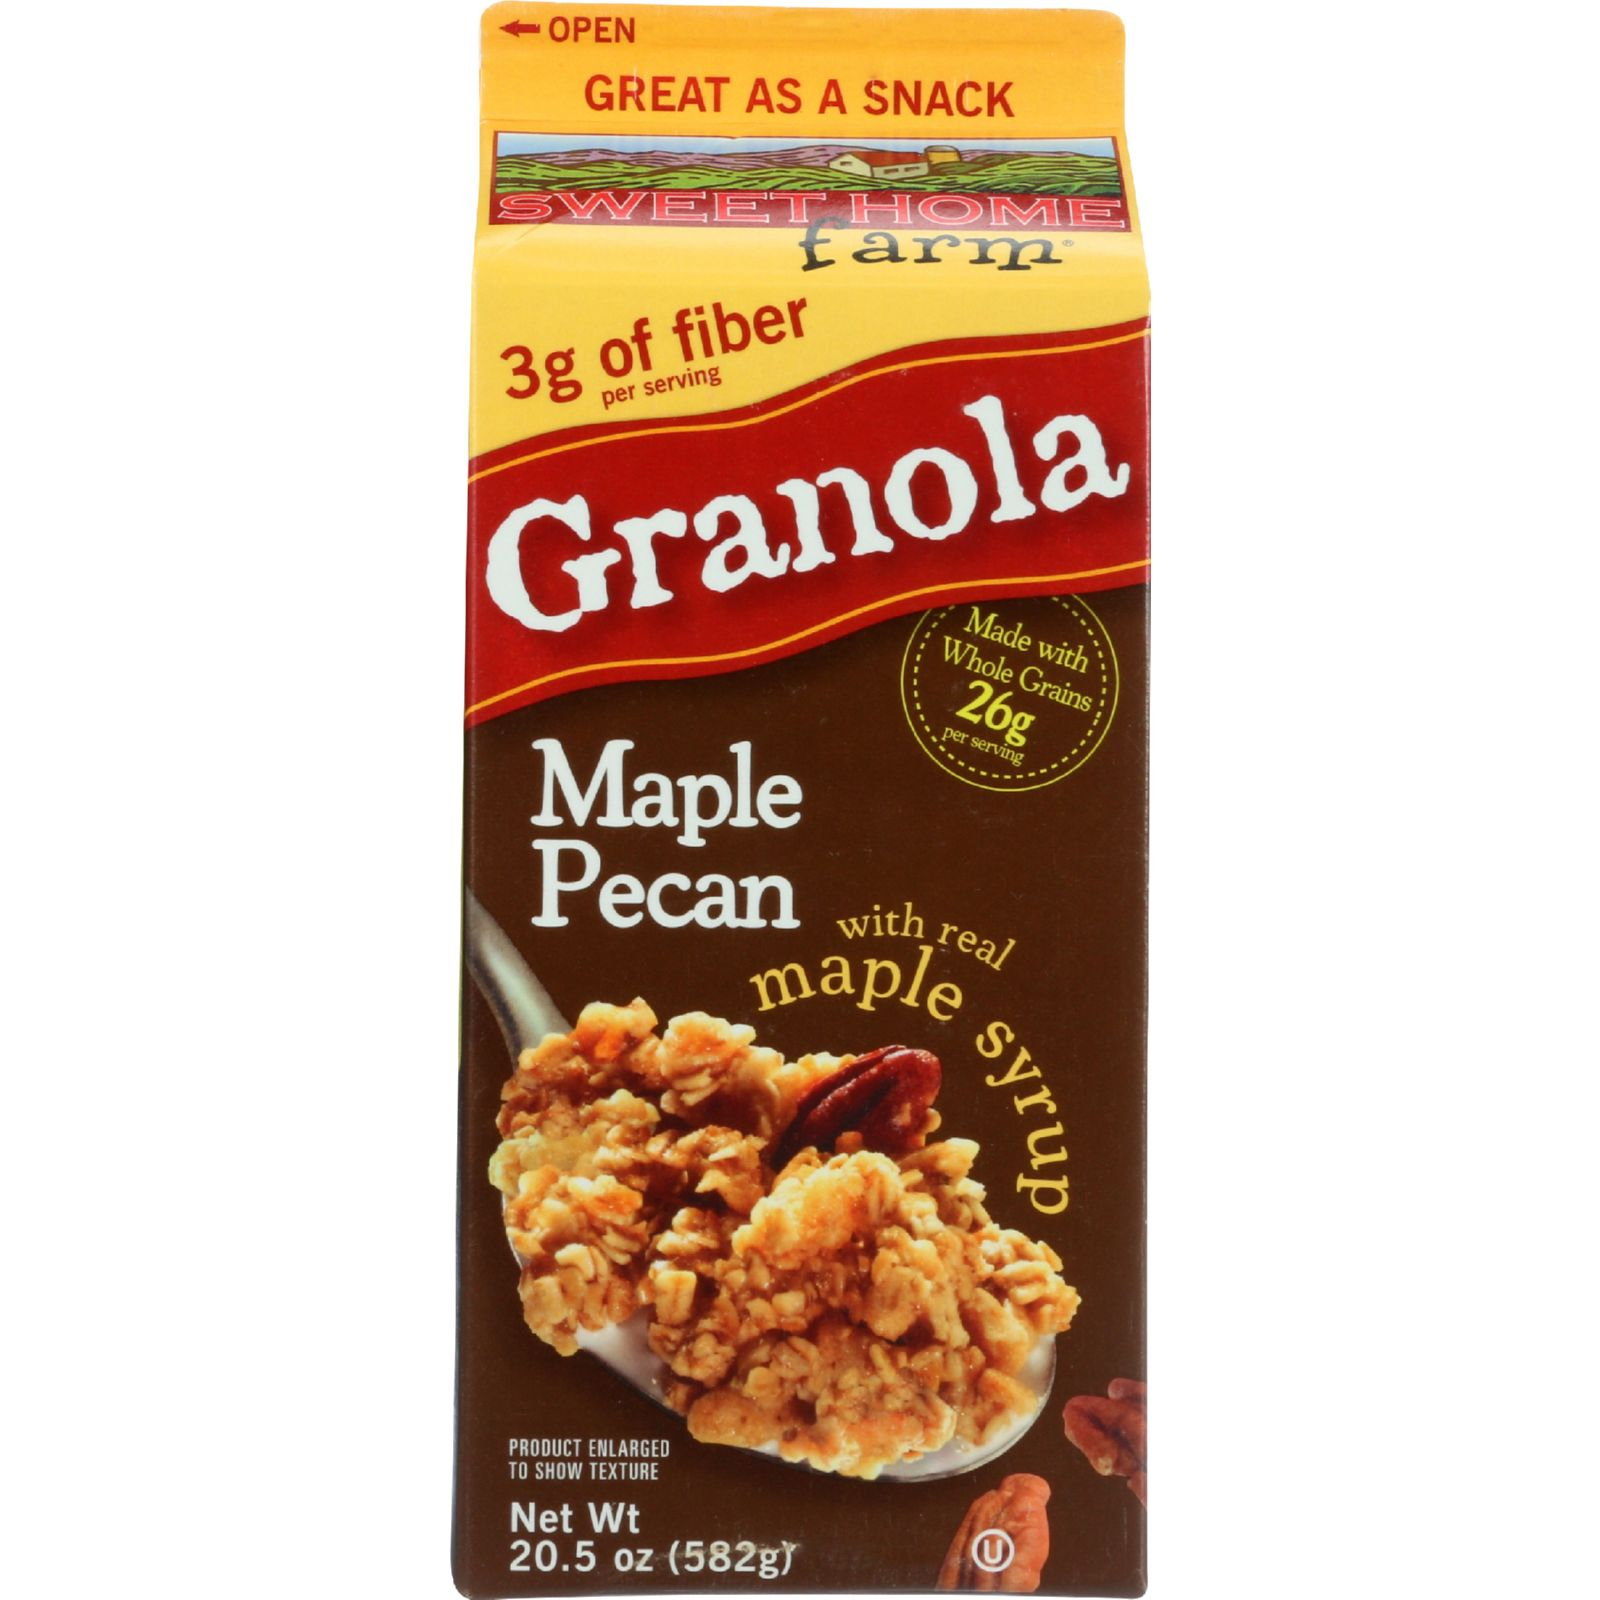 Sweet Home Granola - Maple Pecan - Carton - 20.5 oz - case of 8